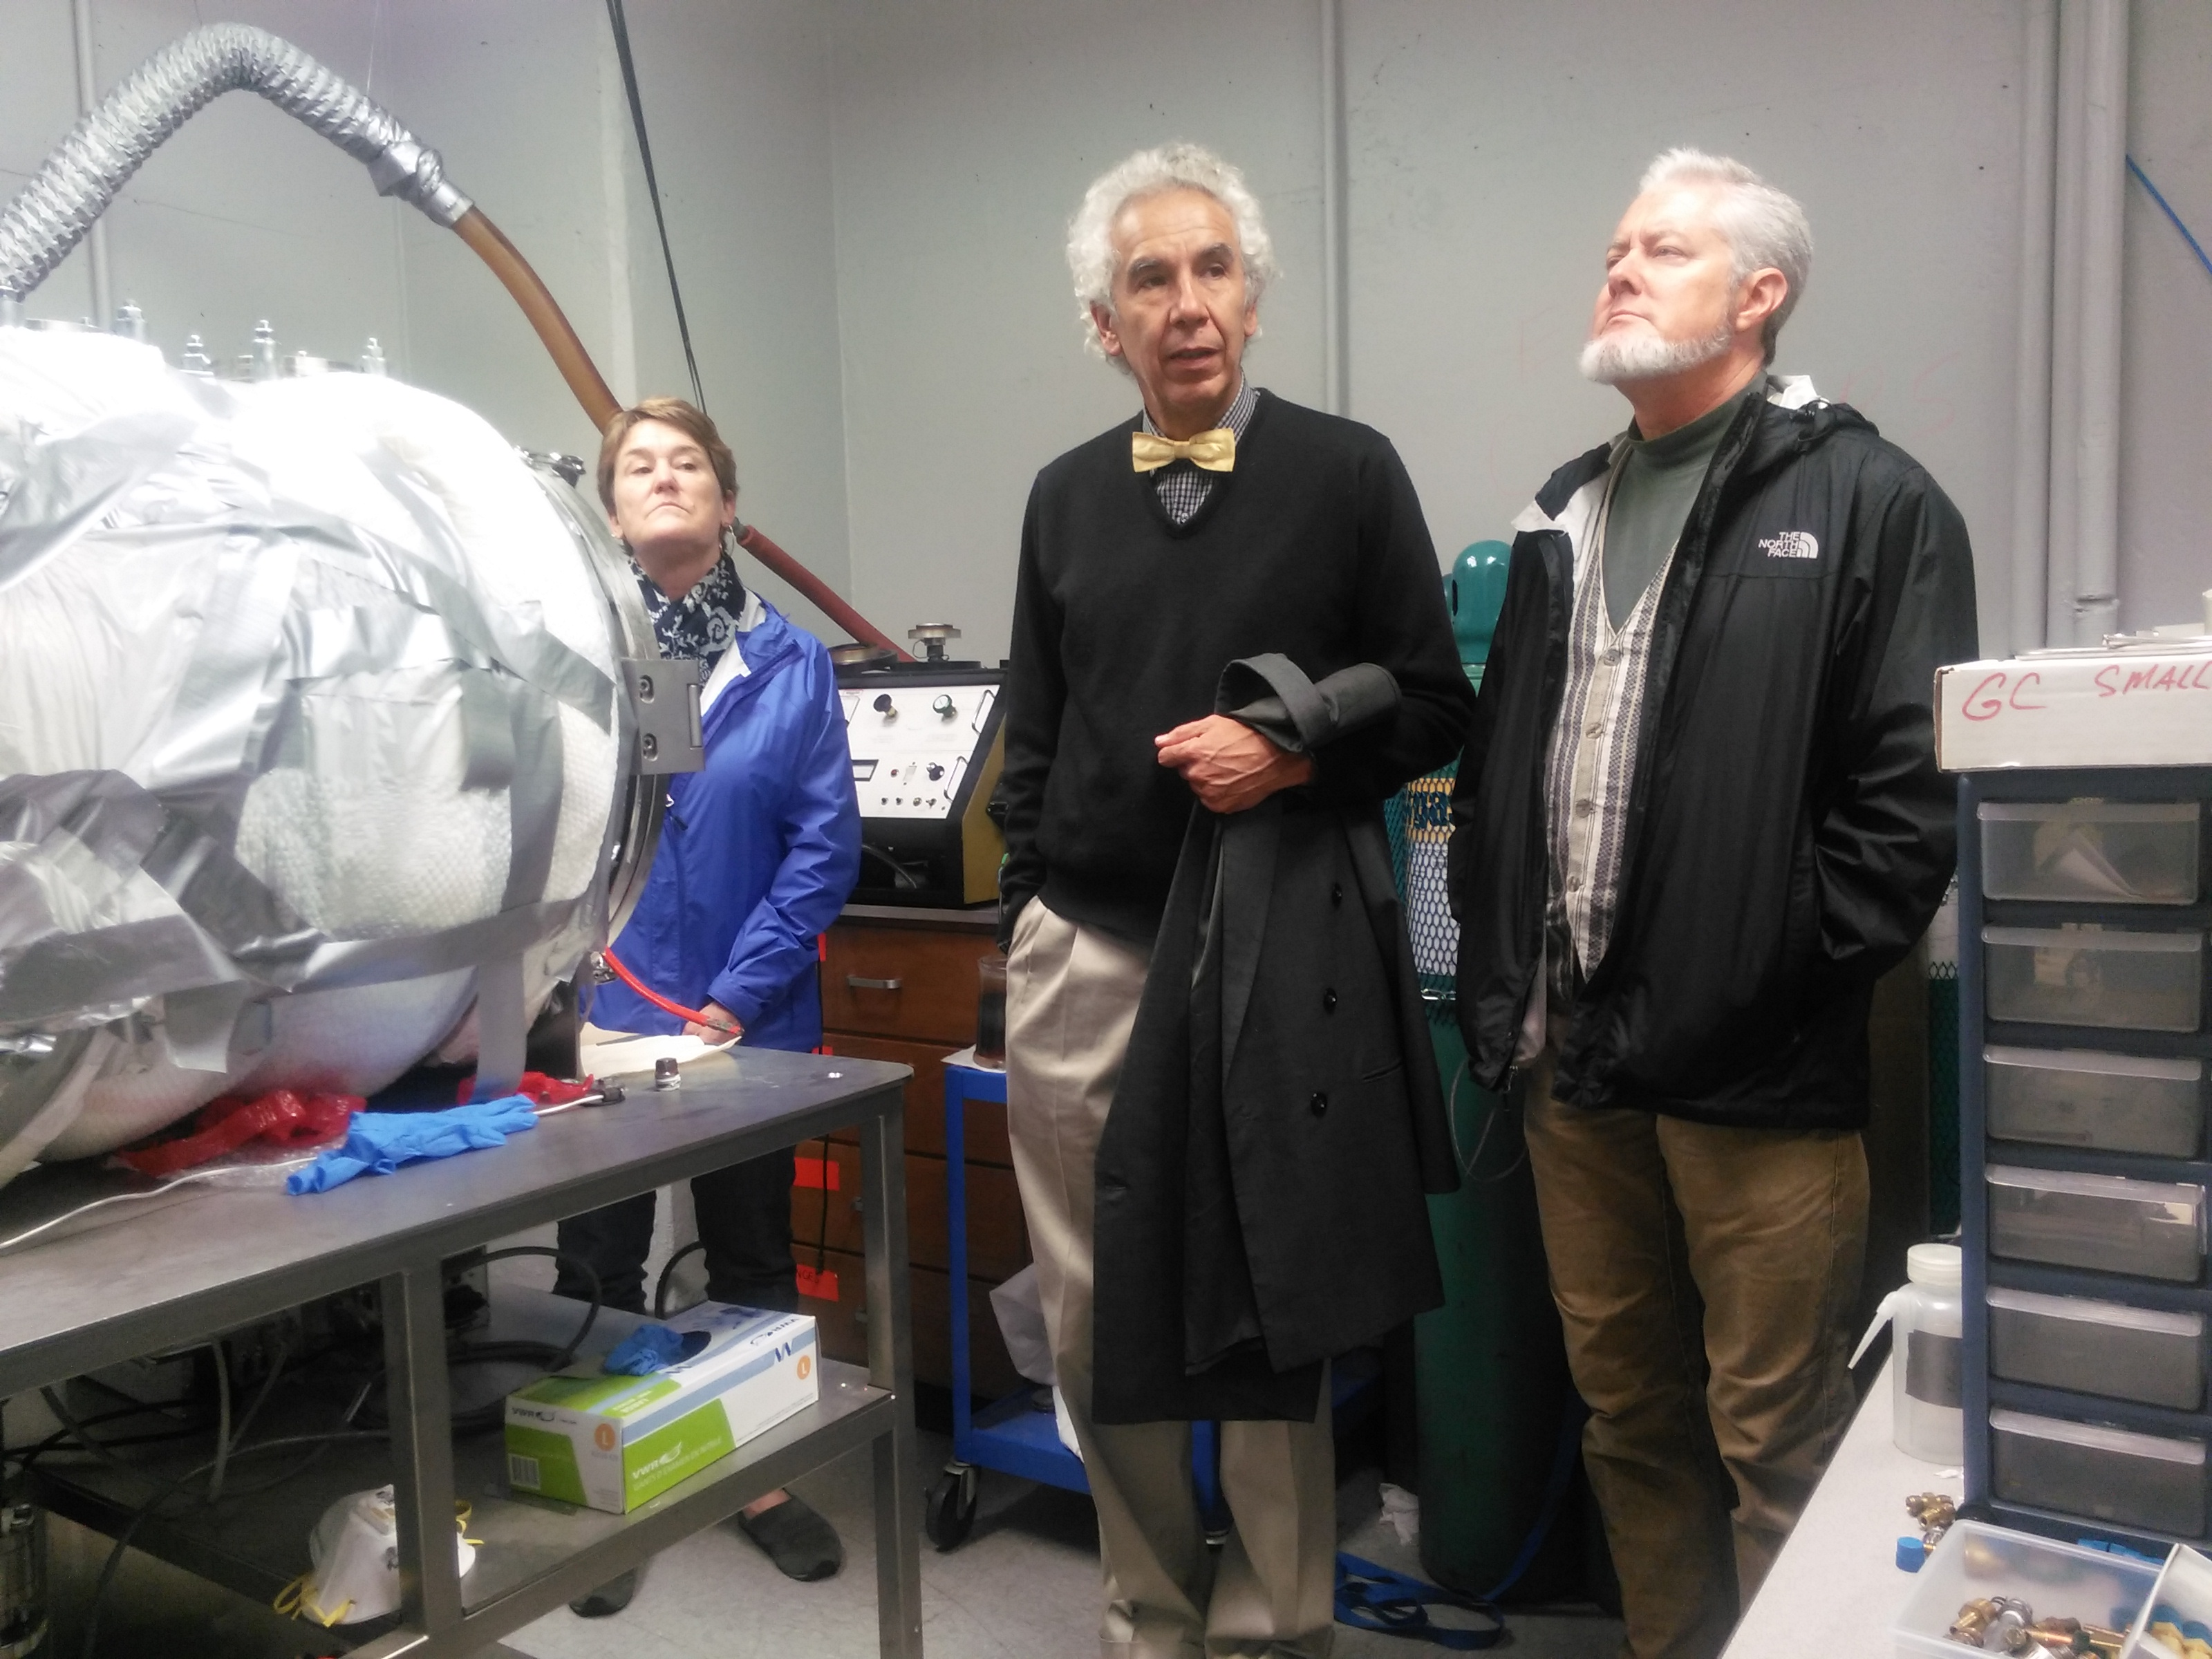 At the Arkansas Cneter for Spoace and Planetary Sciences. From Left: Cindy YOungblood, Dr. Gustavo Zubieta-Calleja and Dr. Tom Youngblood.